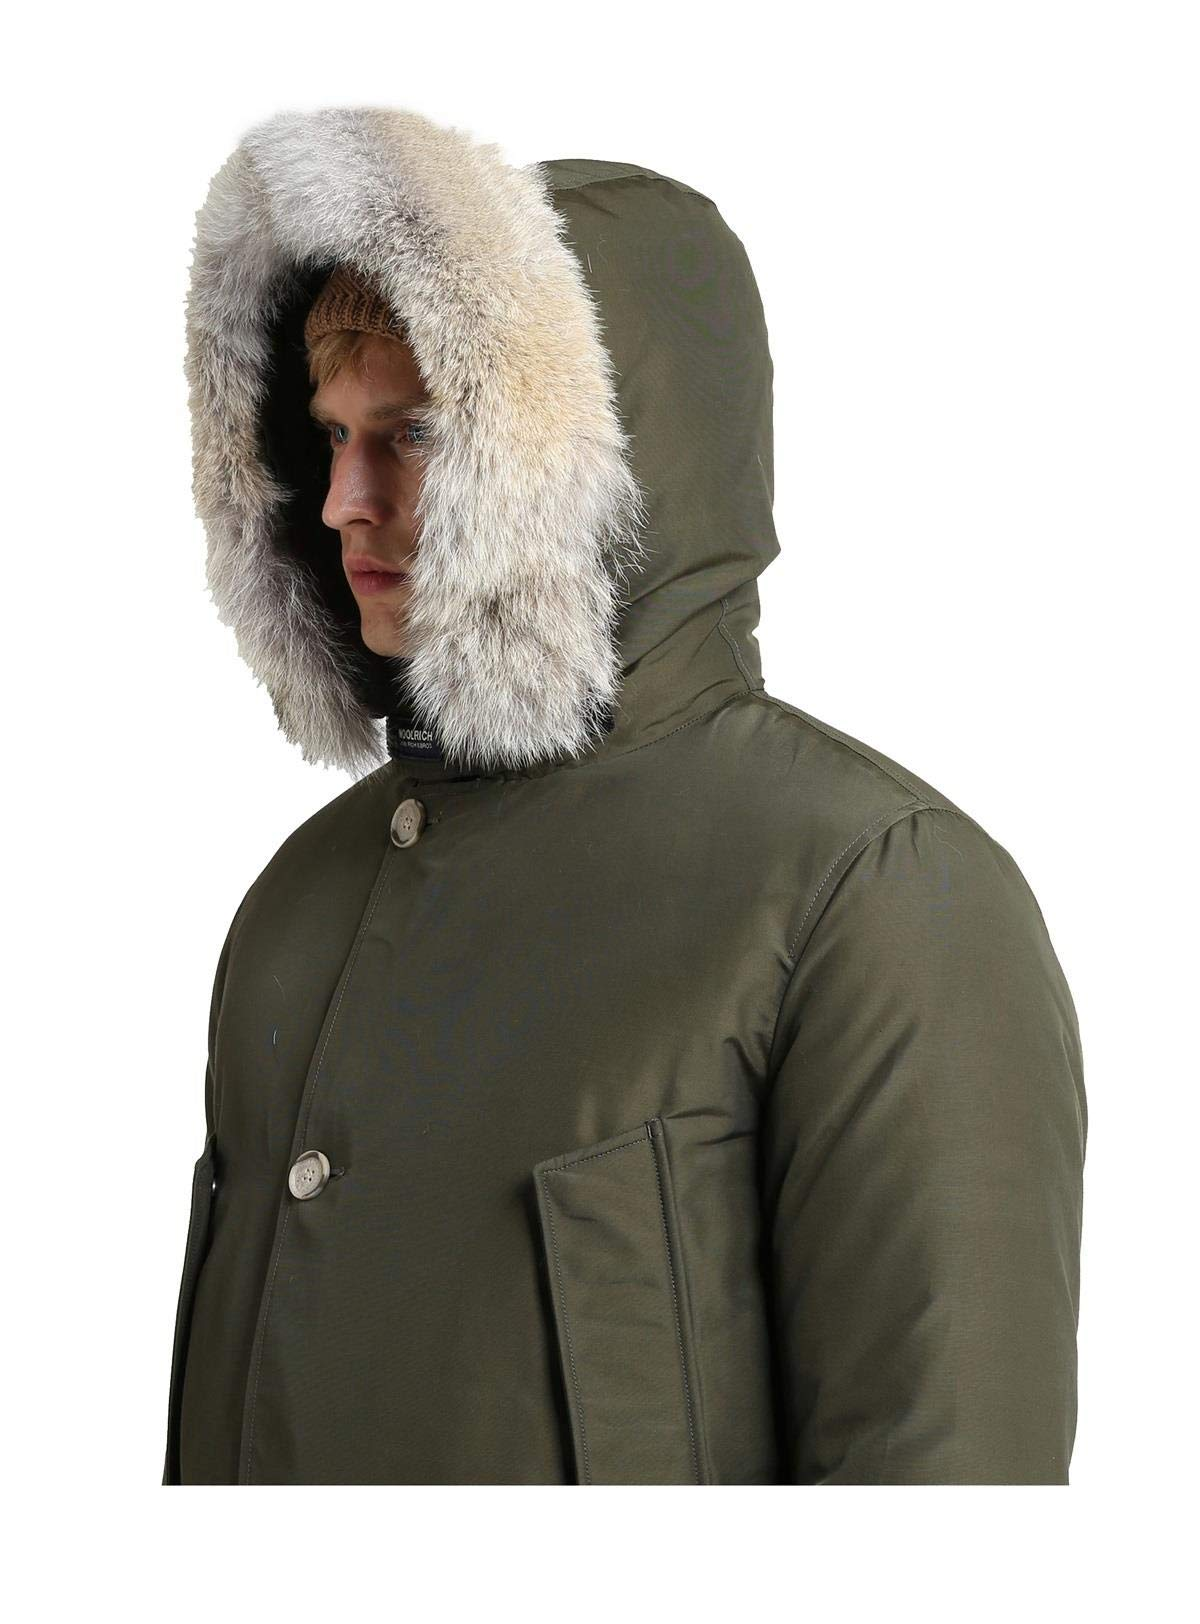 Woolrich WOCPS167S CN01 Parka Uomo DF Verde Scuro S Marche Famose